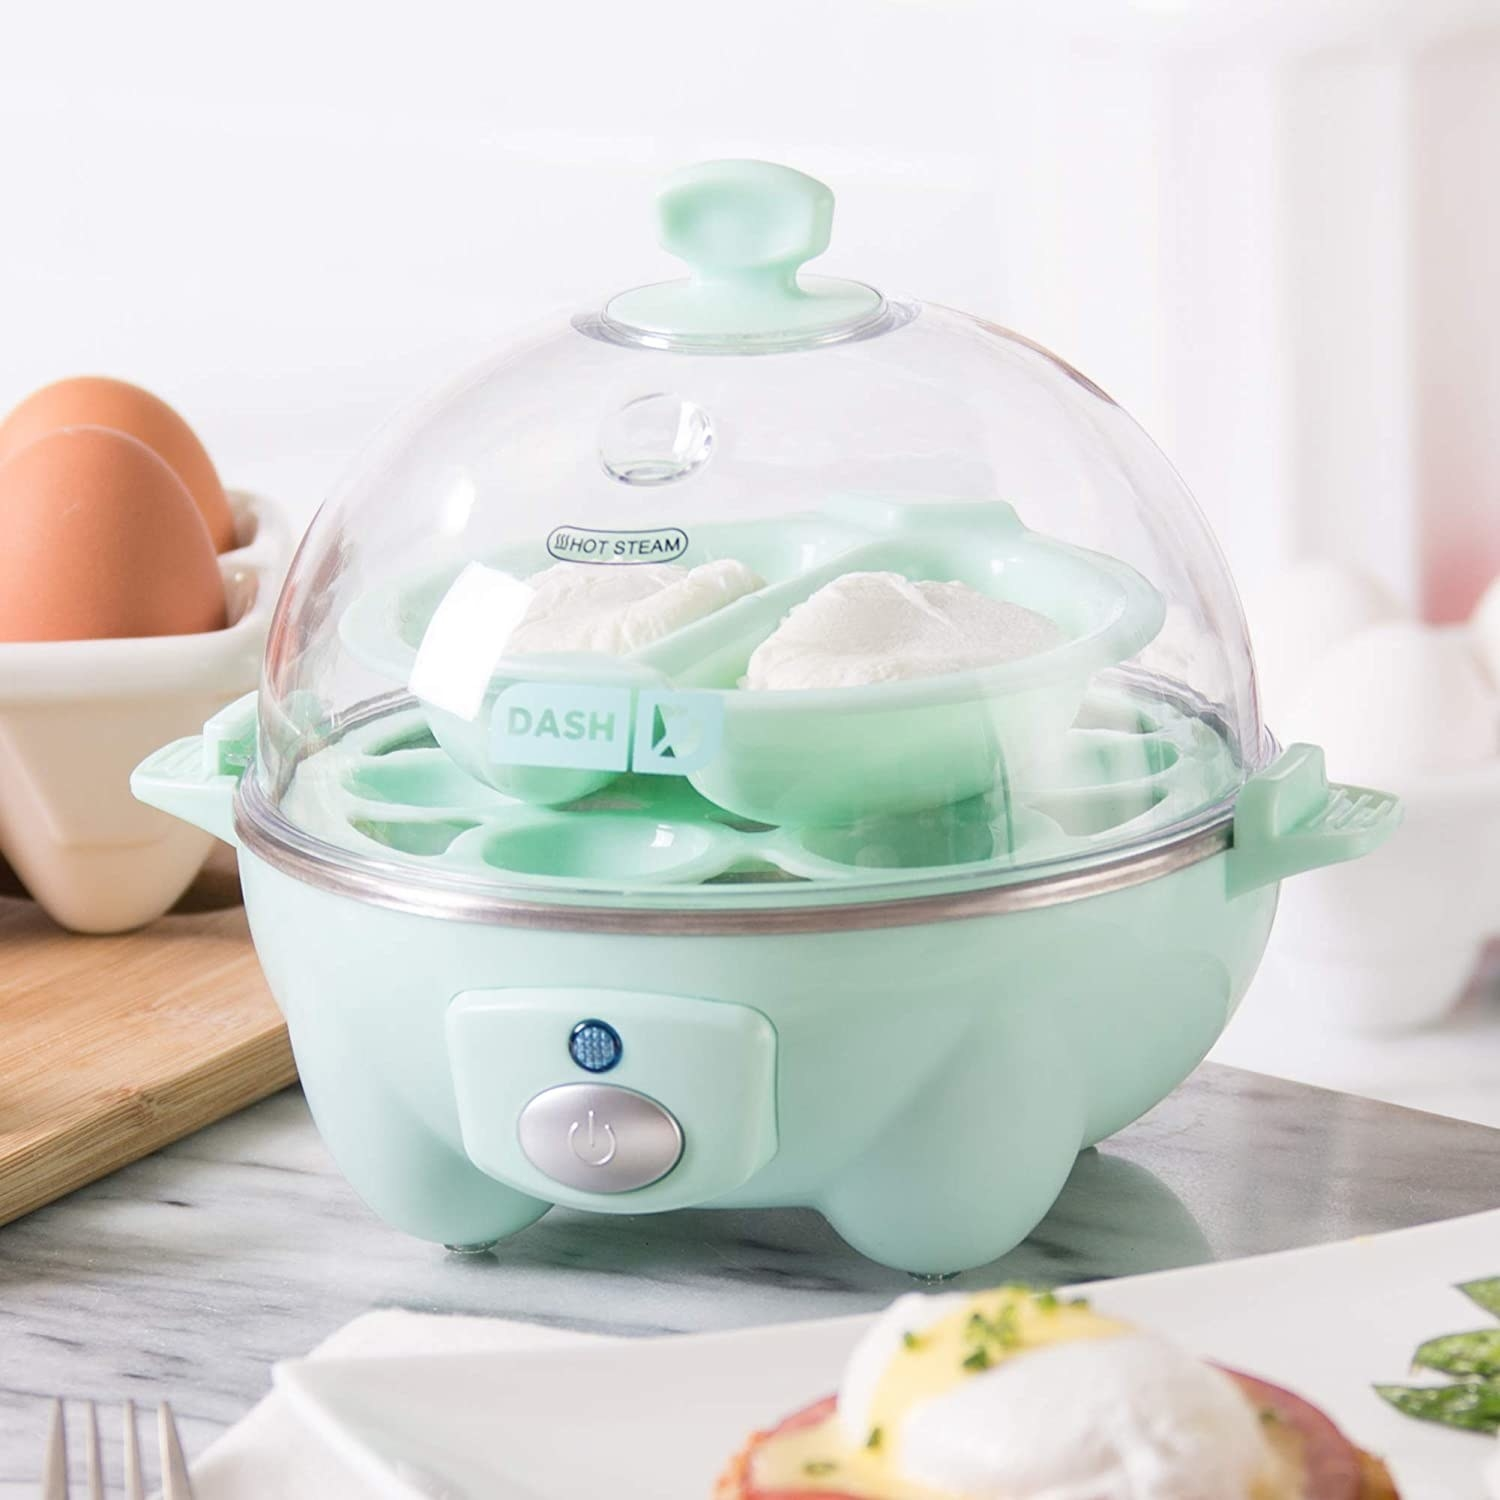 DASH egg cooker in teal